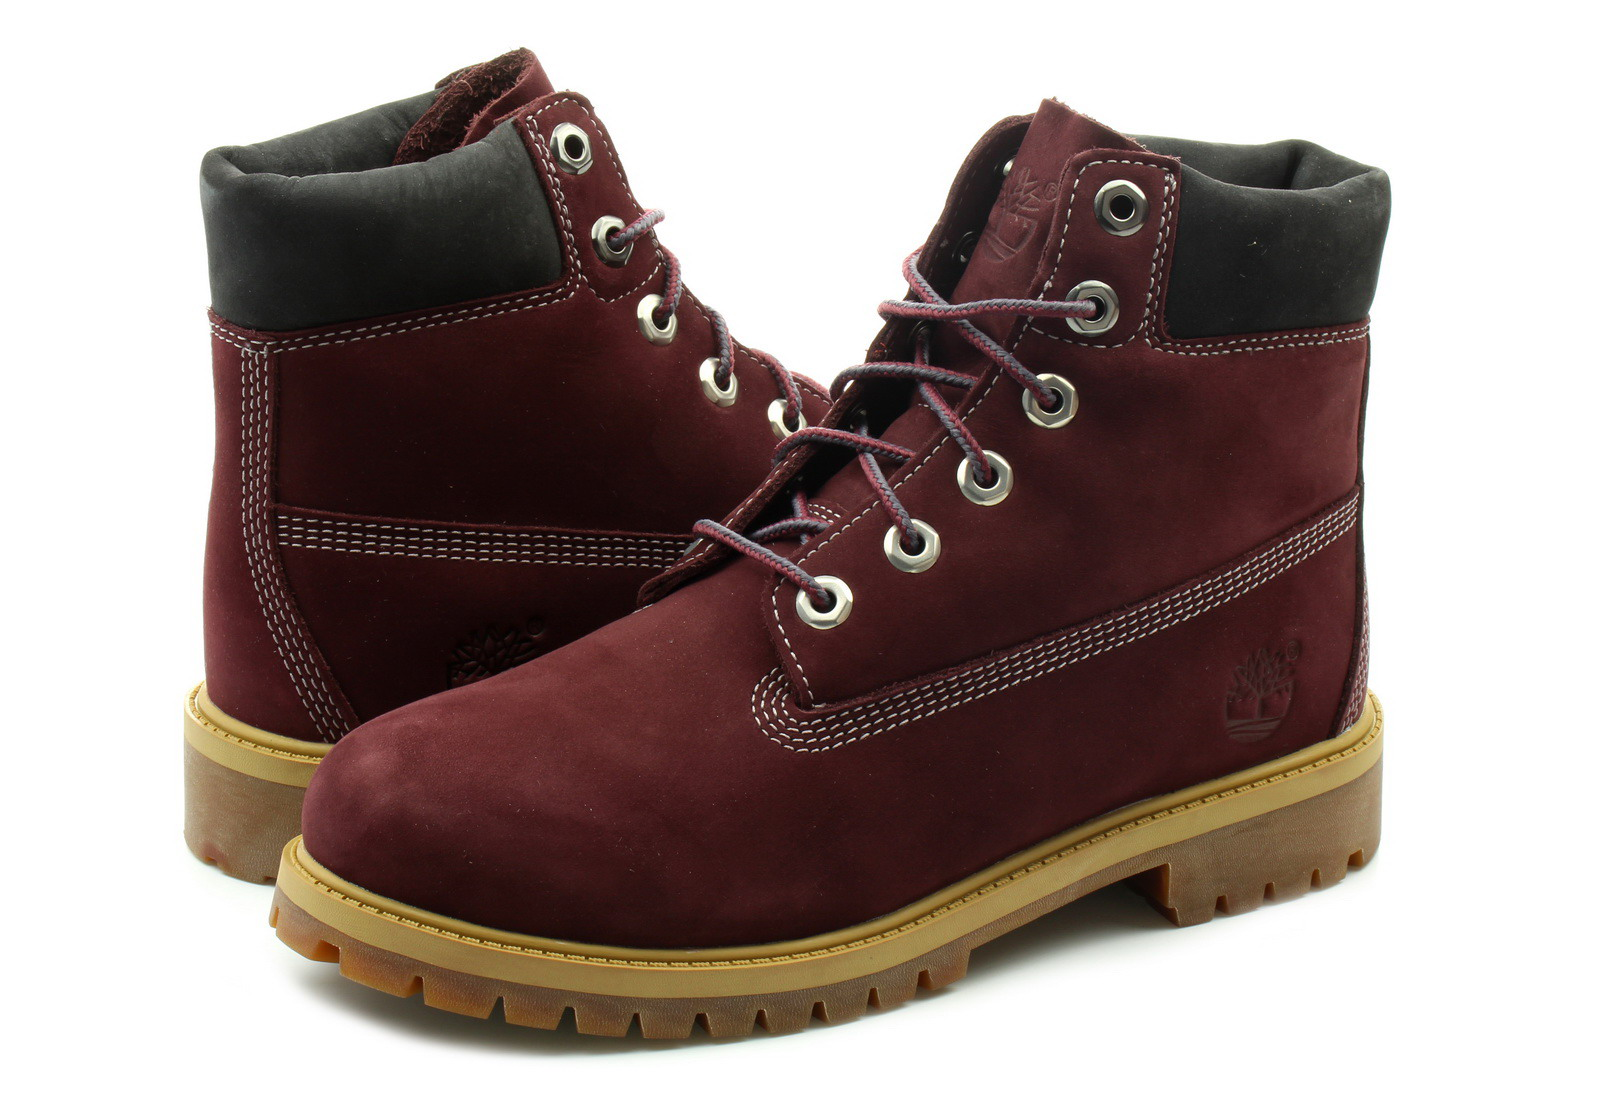 Timberland Bakancs - 6 Inch Prem Boot - a1baq-por - Office Shoes ... 514e394f3f